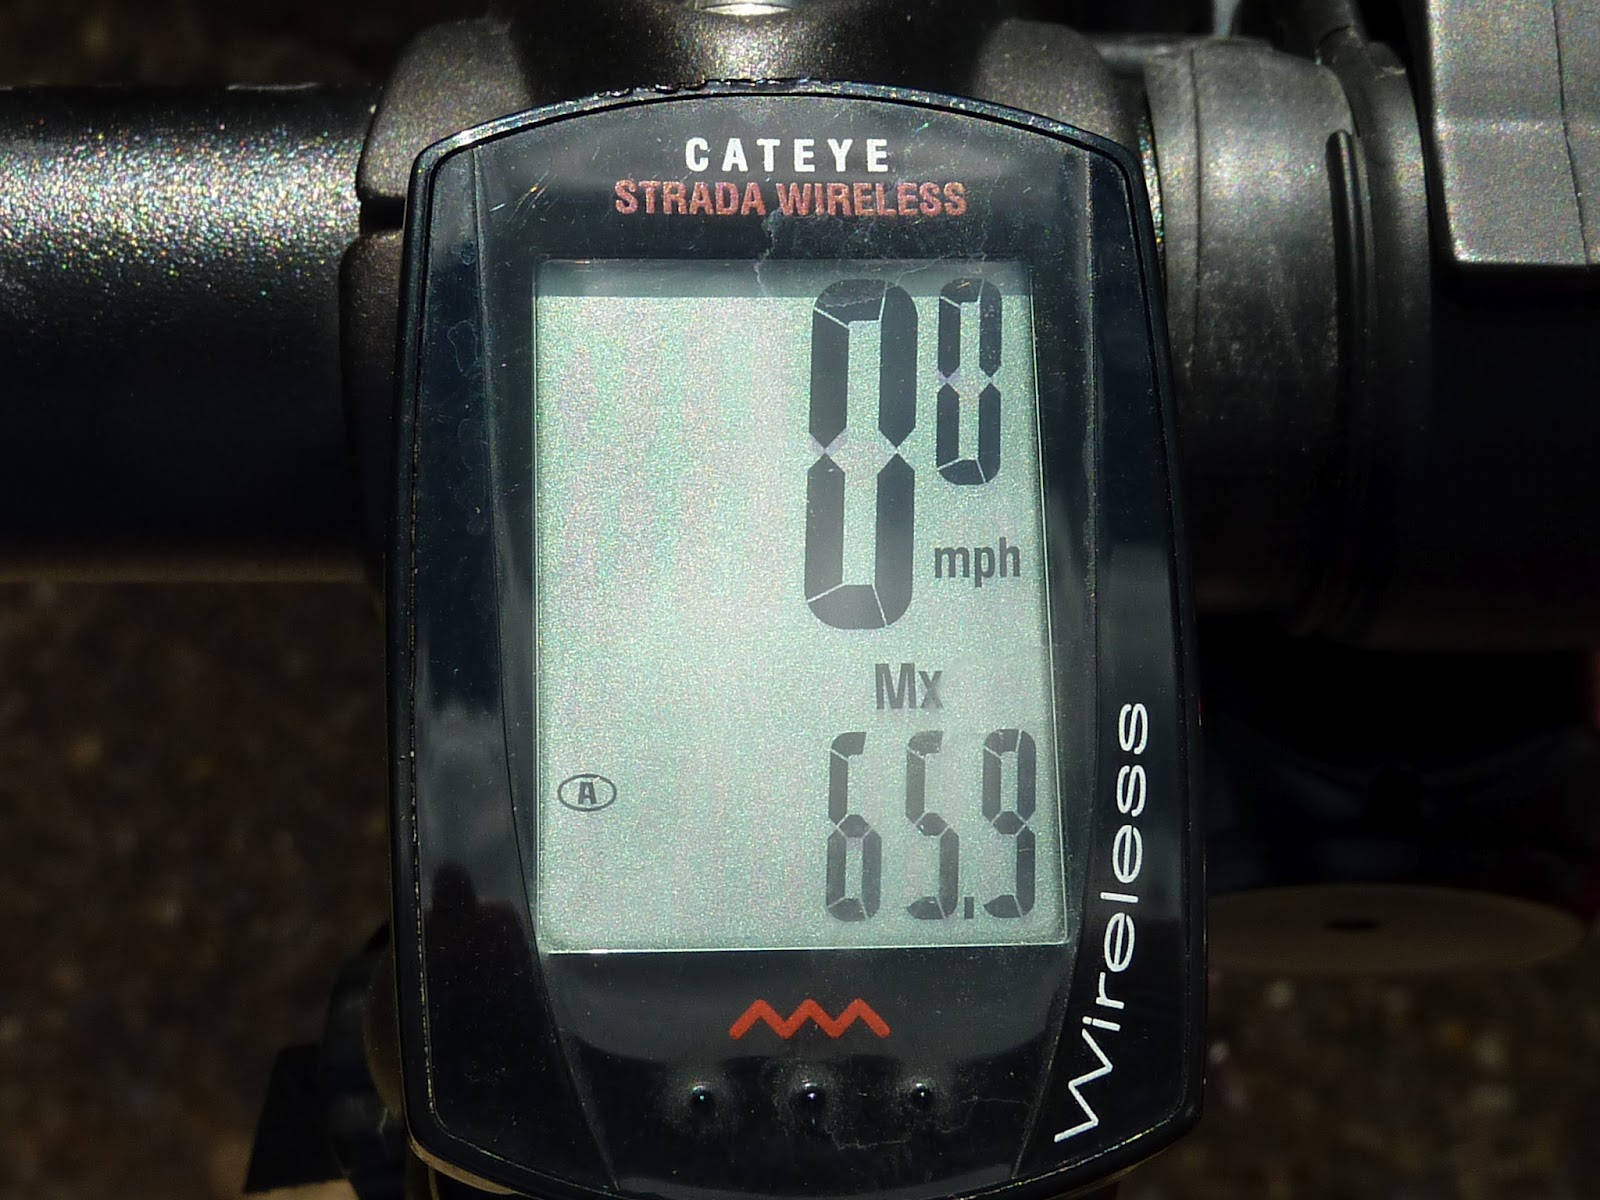 659mph And Time To Review Cateye Strada Wireless The Cycle